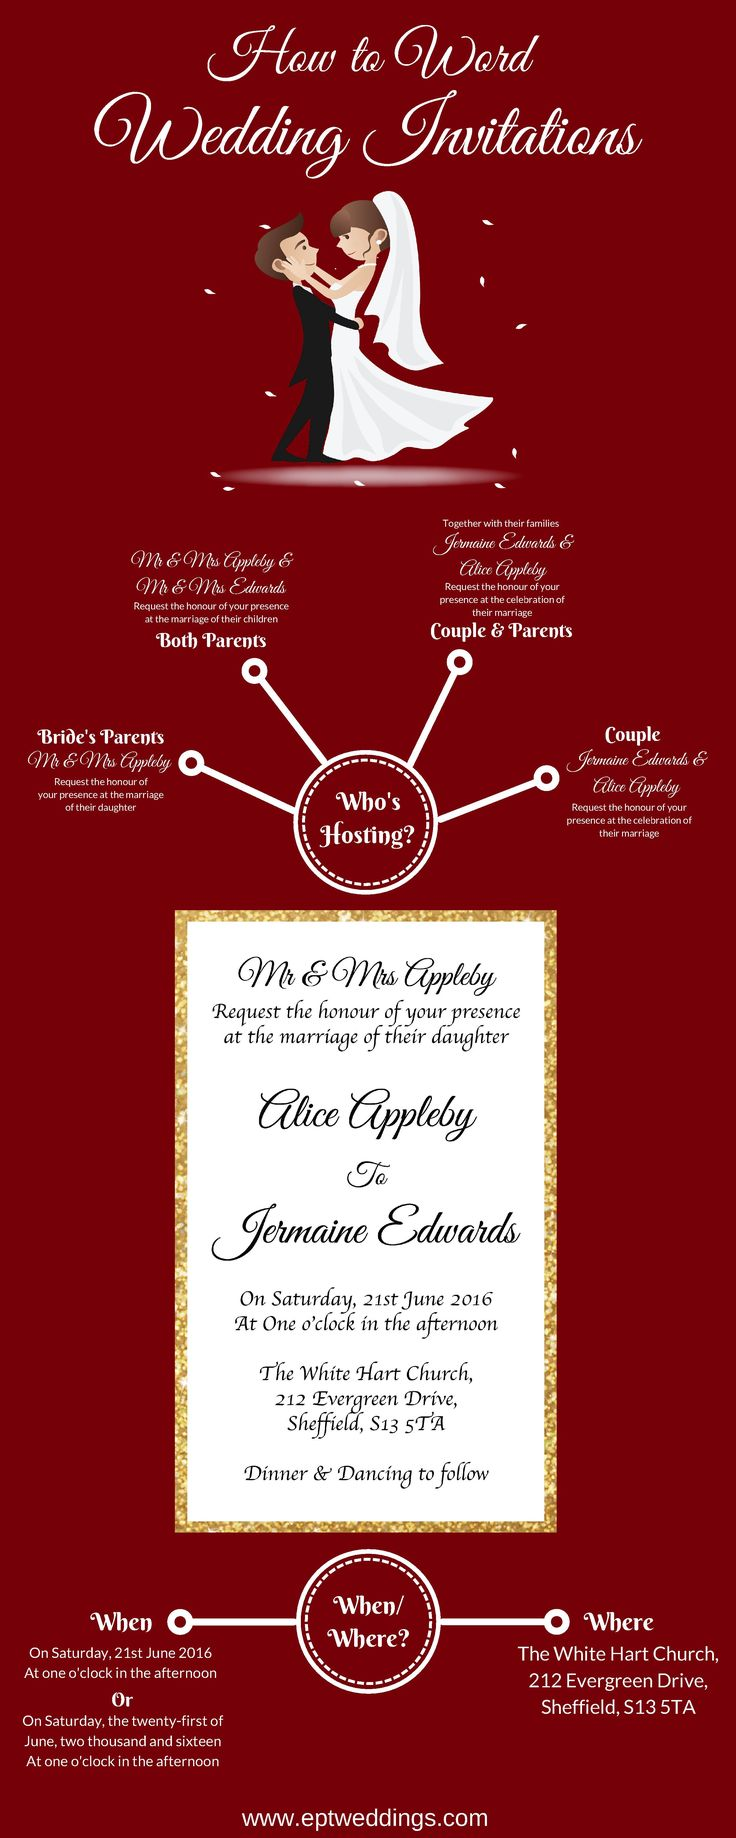 Awesome Wedding Invitation Wording Parents Vignette - Invitations ...